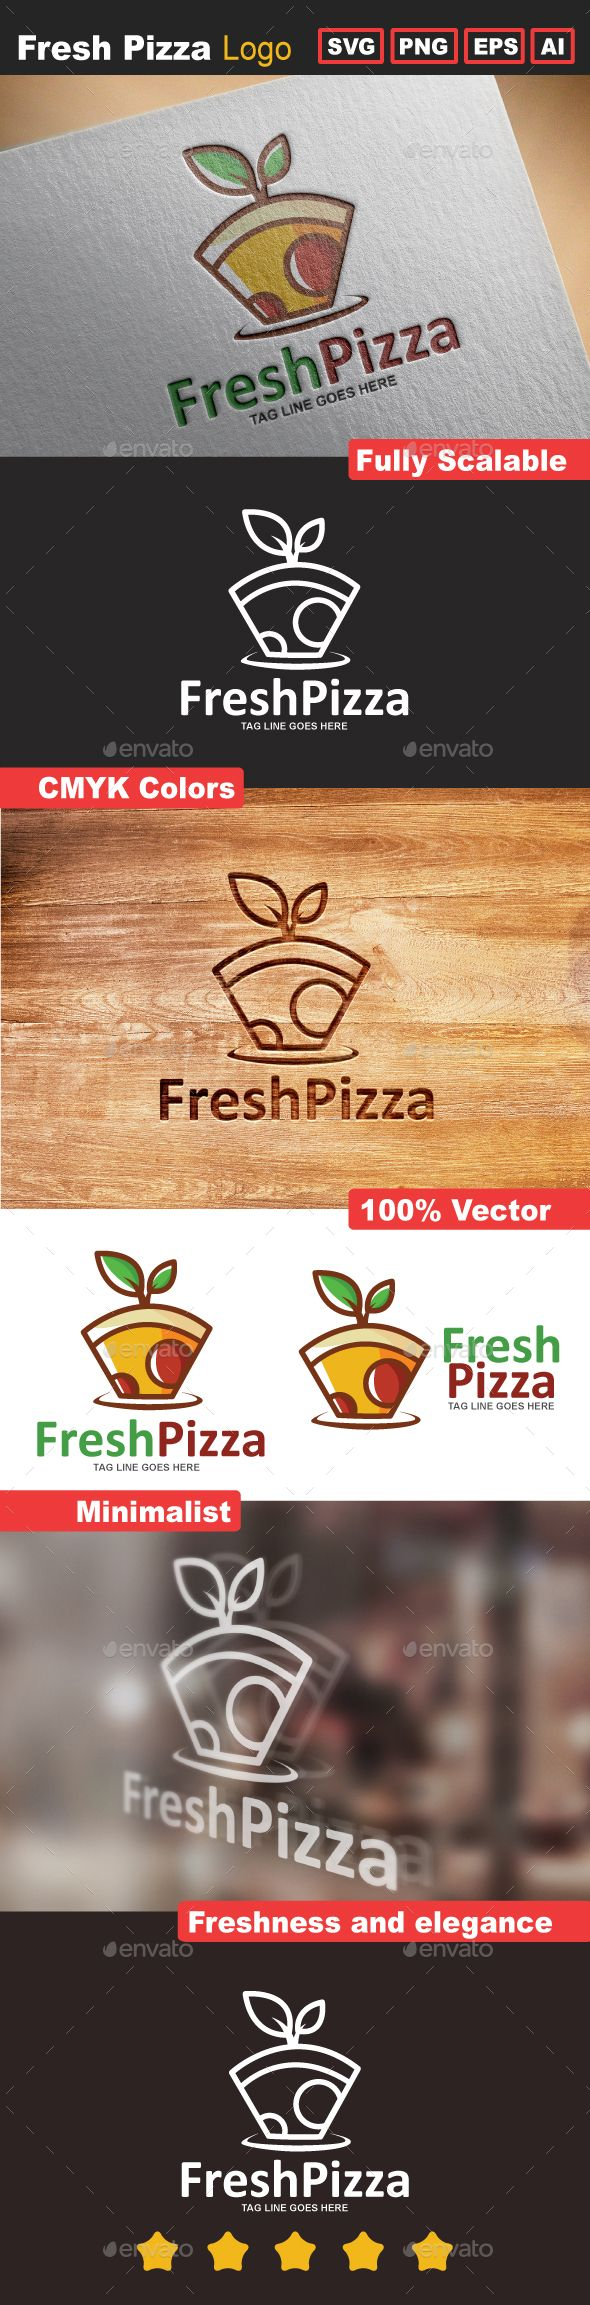 Download Free              Fresh Pizza Logo Template            #               cheese logo #chef logo #cooking #corporate business logo #cusine #delicious #eating place #fast food logo #food logo #food logotype #fresh food logo #fresh logo #fresh pizza logo #gastronomy #gourmet #green food #healthy #healthy logo #nature #pizza delivery #pizza logo #pizza shop logo #recipe #Restaurant logo #restaurant logotype #vegan logo #vegetables #vegetariam food #vegetarian logo #yummy